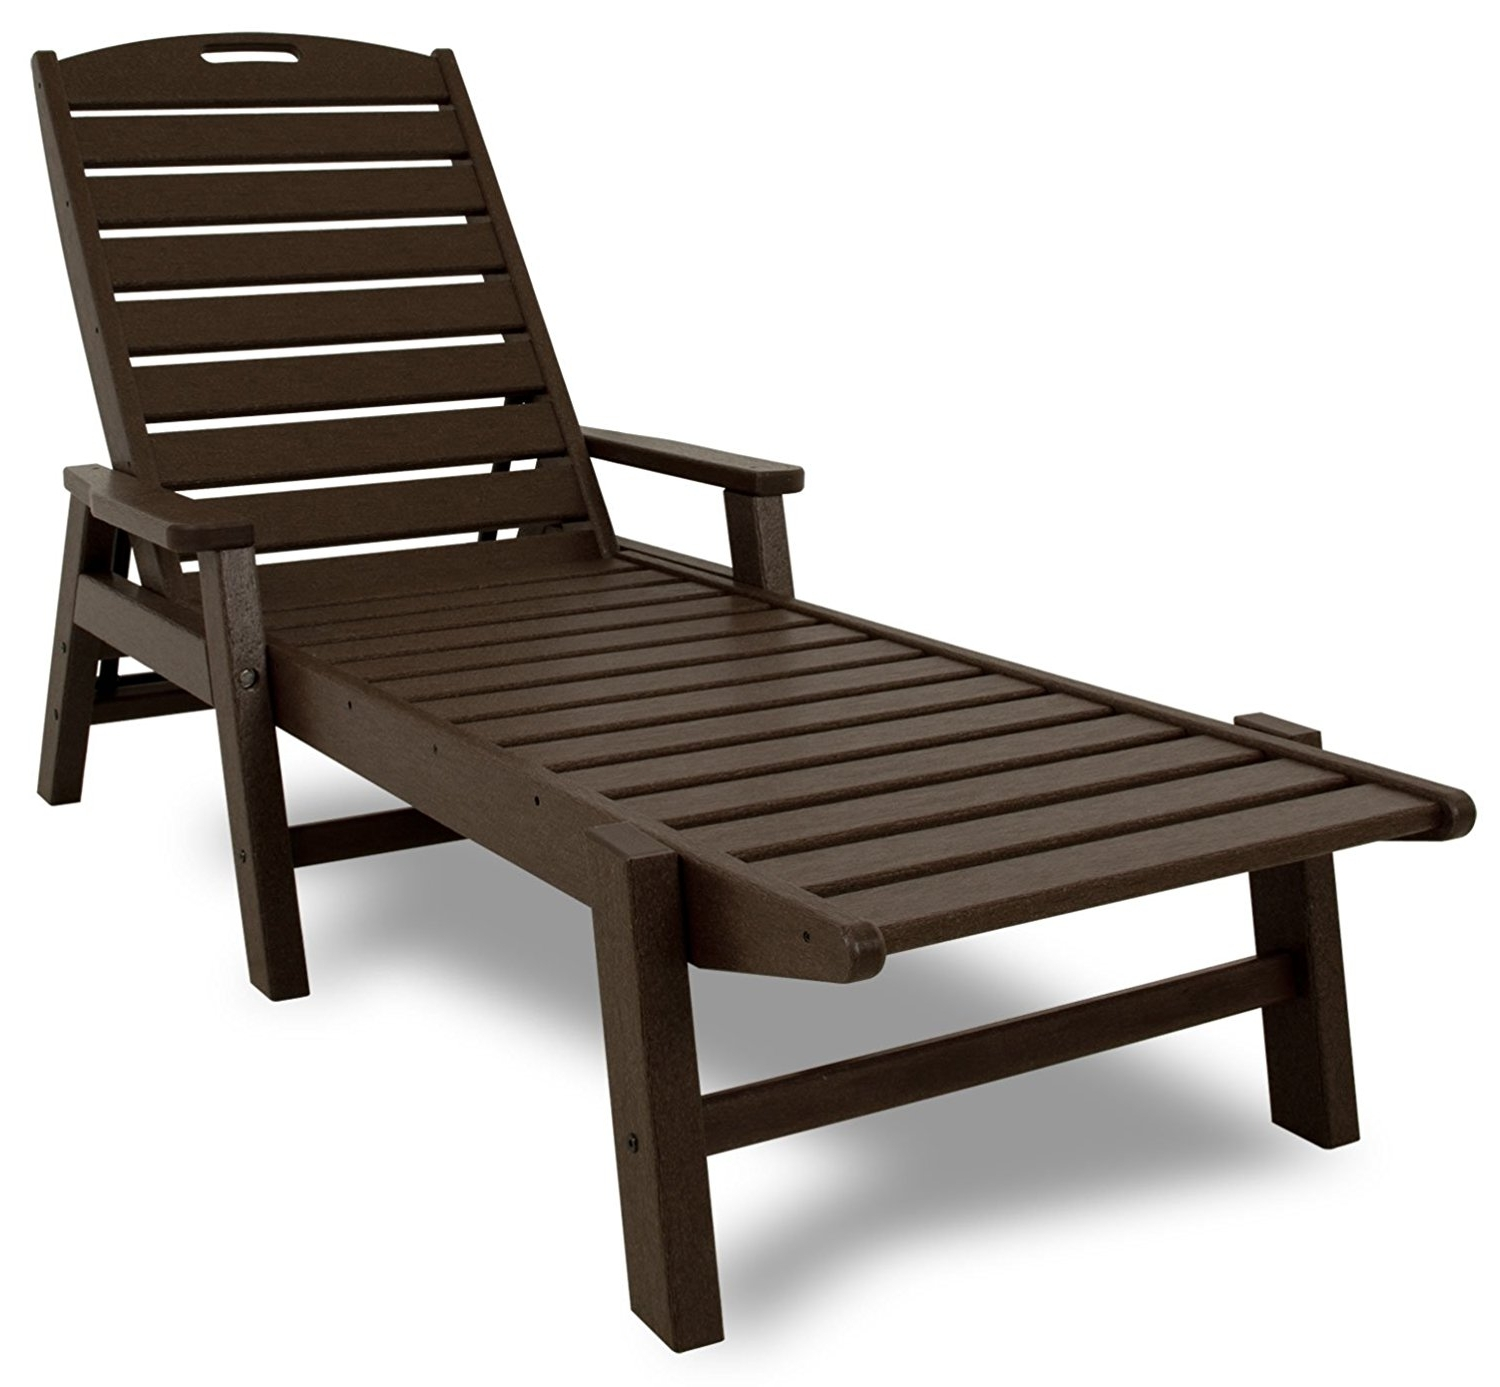 Amazon : Polywood Ncc2280ma Nautical Chaise With Arms Regarding Well Known High Quality Chaise Lounge Chairs (View 4 of 15)